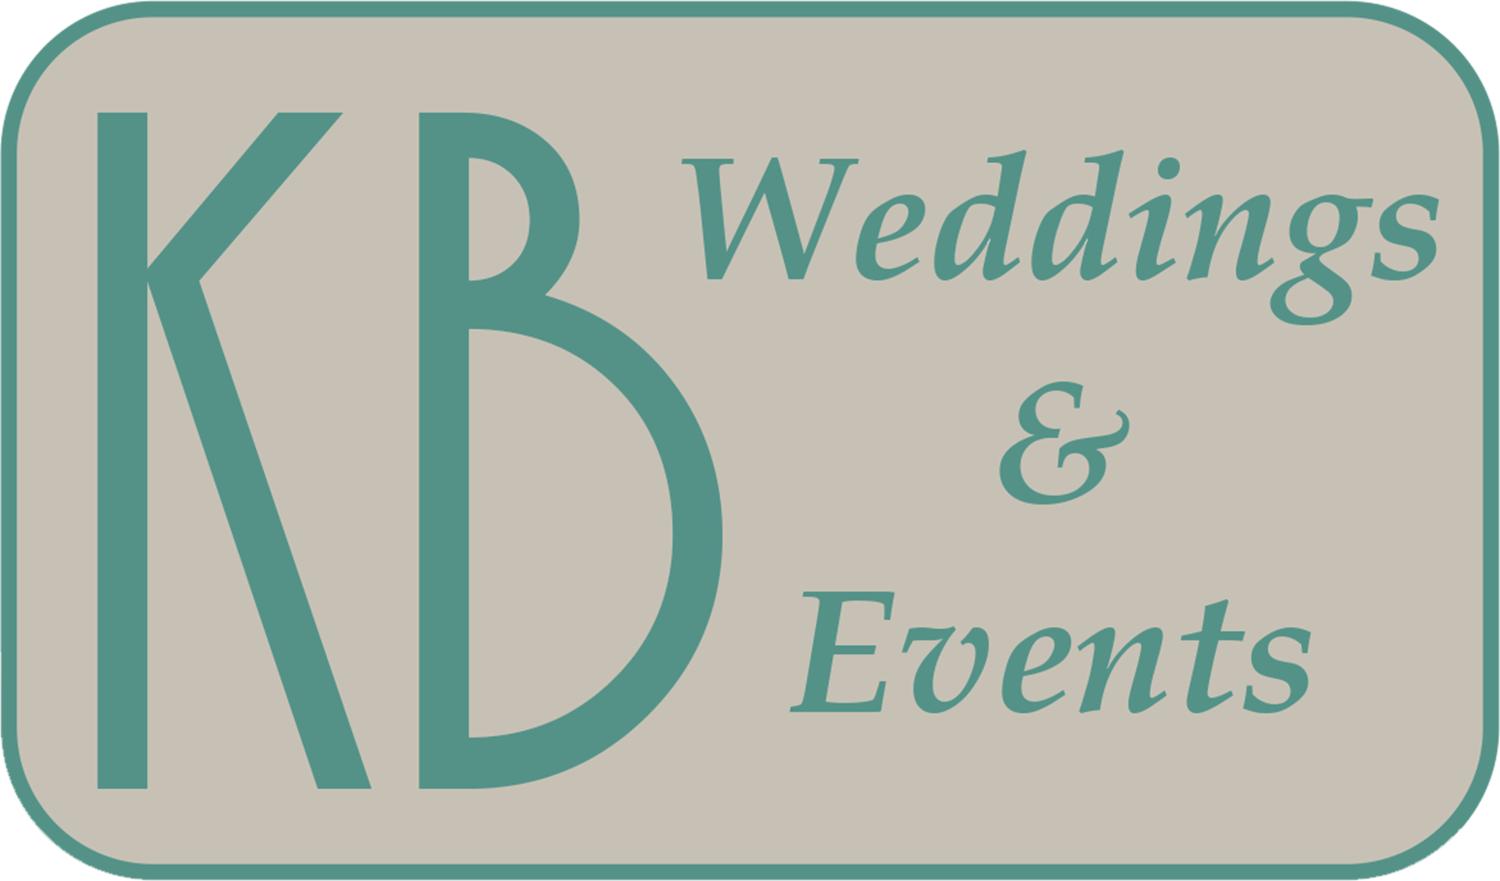 KB Weddings & Events